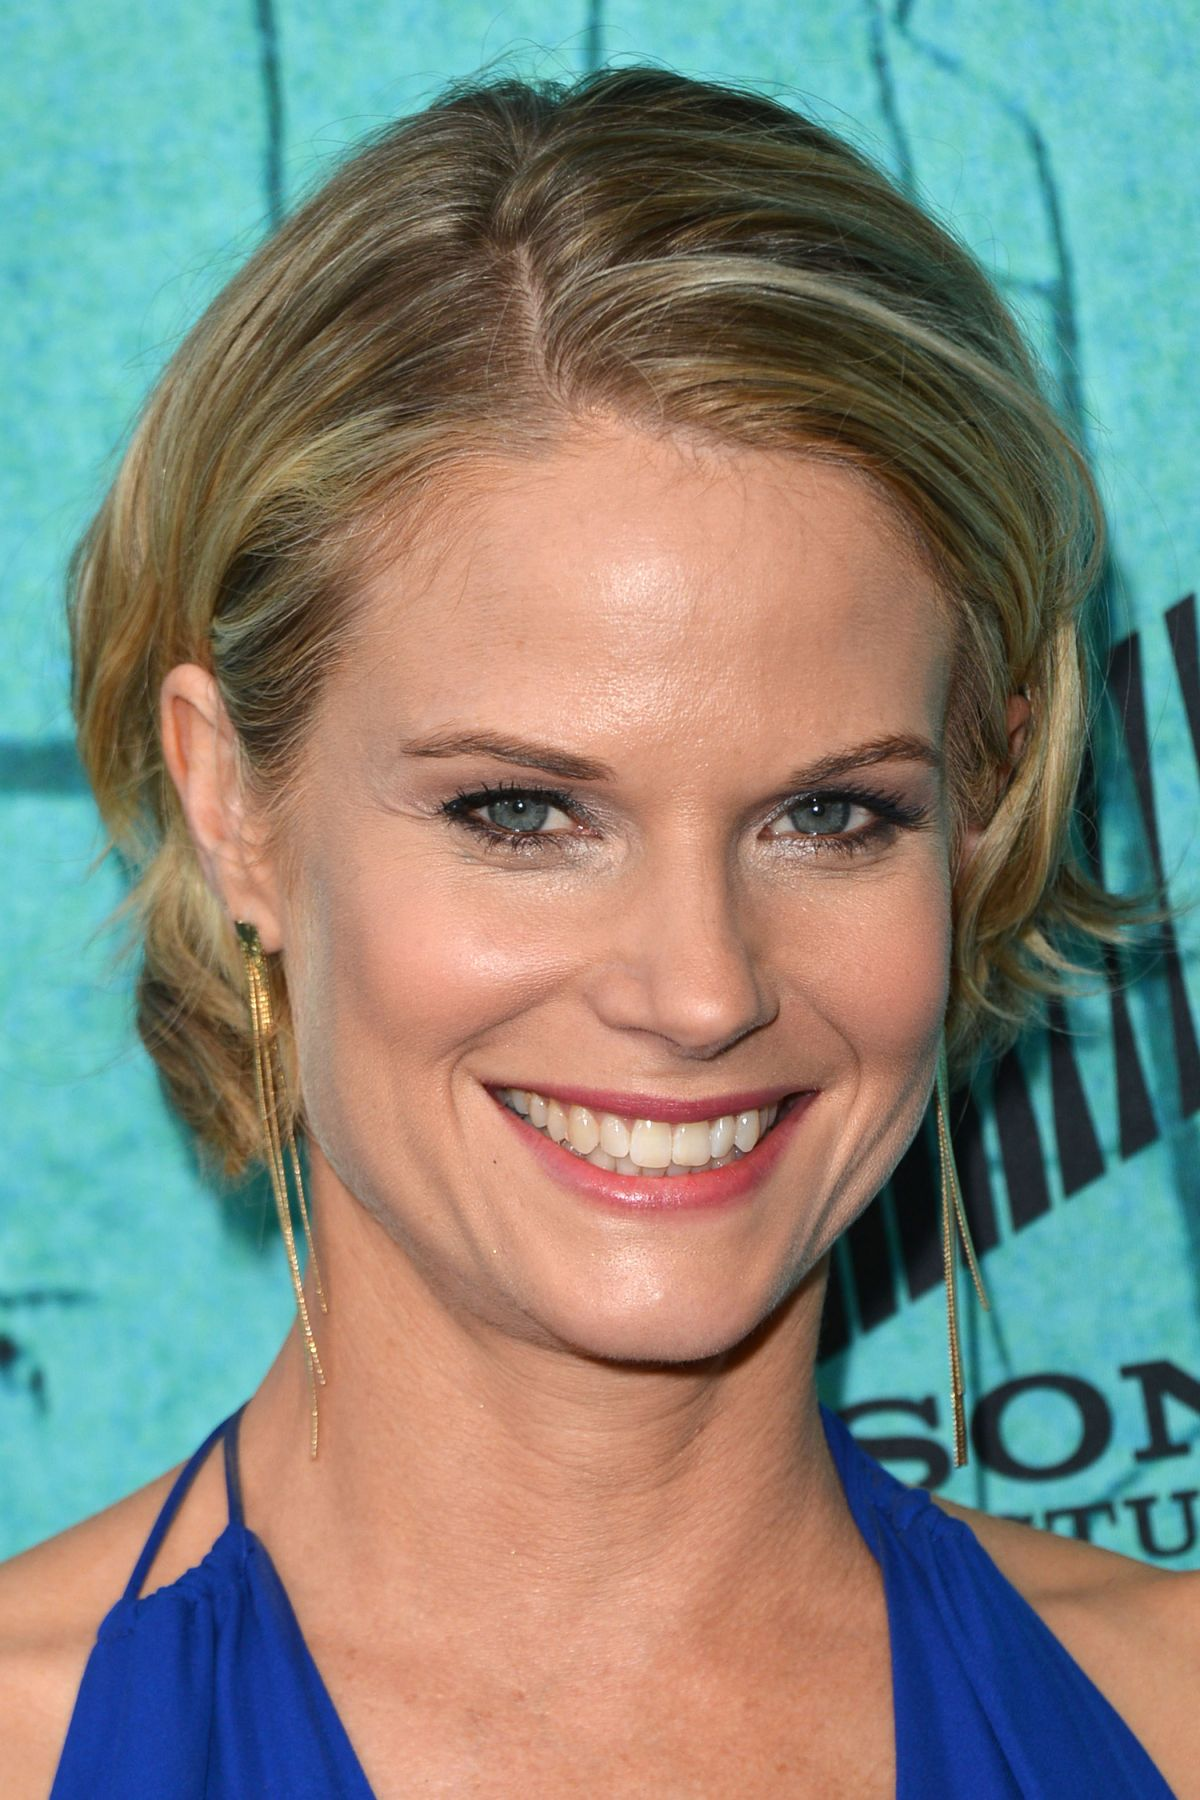 joelle carter bikinijoelle carter twitter, joelle carter photo gallery, joelle carter, joelle carter american pie 2, joelle carter instagram, joelle carter interview, joelle carter net worth, joelle carter imdb, joelle carter bikini, joelle carter measurements, joelle carter sons of anarchy, joelle carter nudography, joelle carter height weight